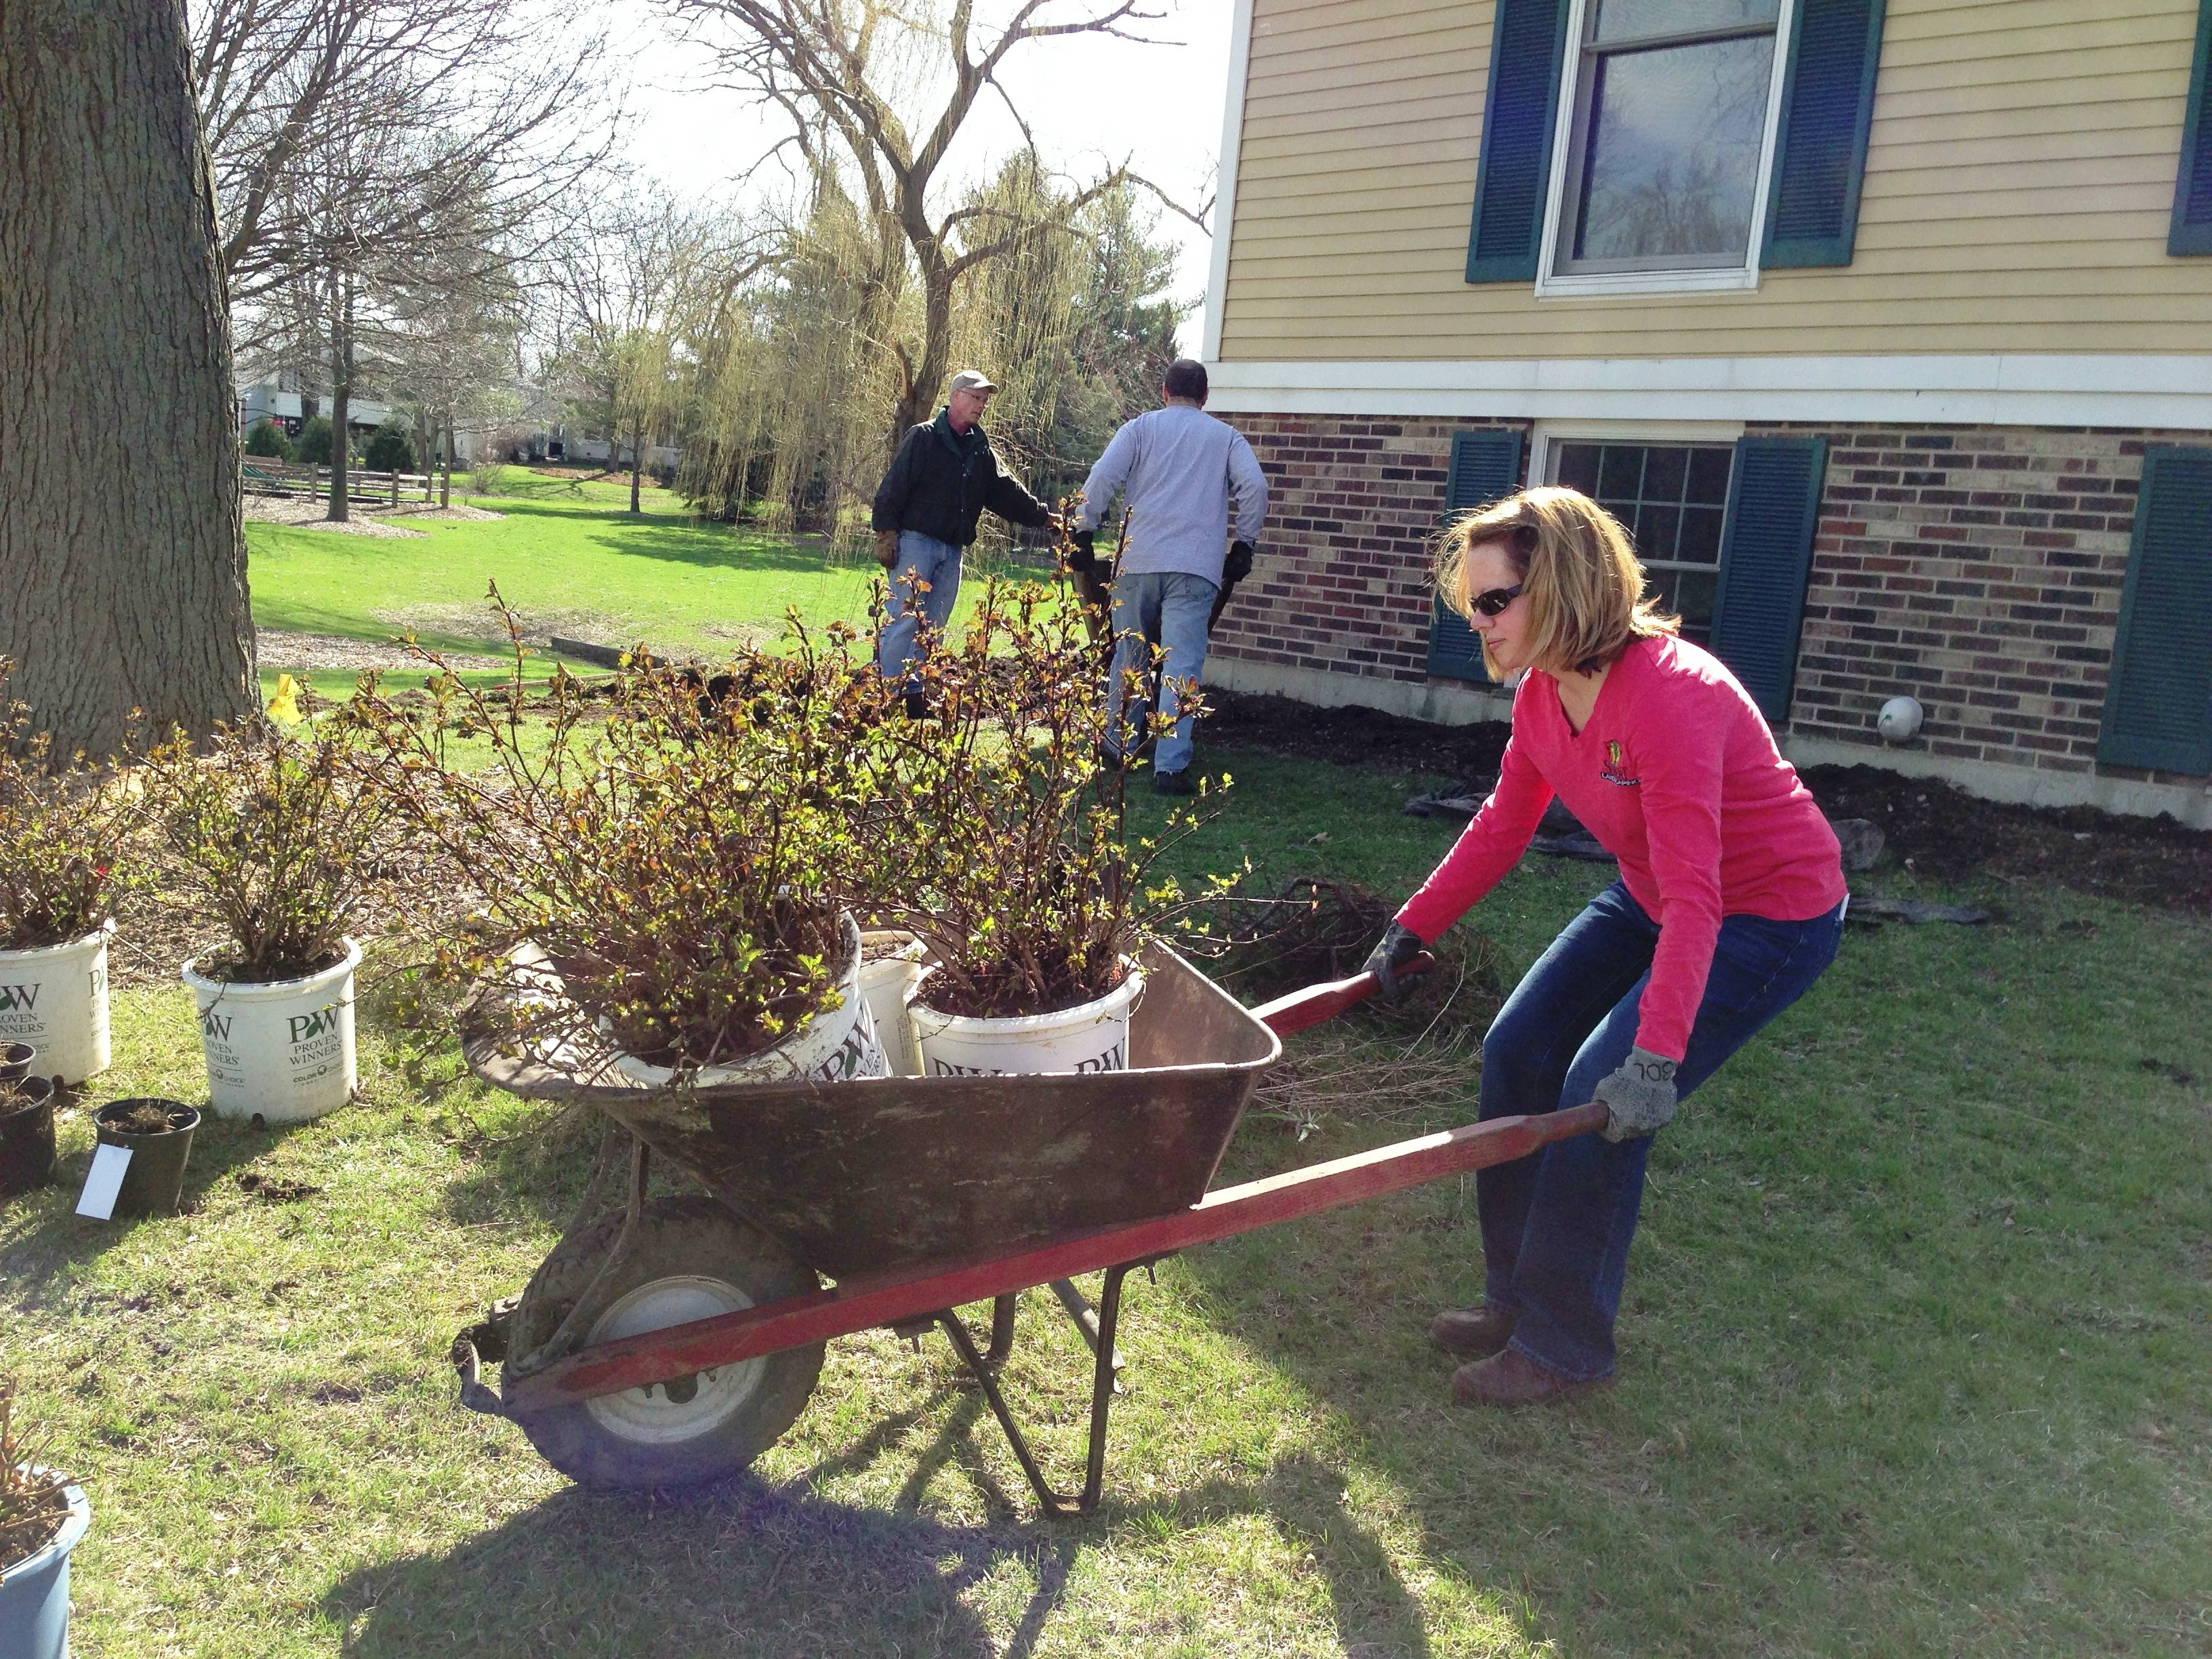 Shannon Hoban, a branch manager for Sebert Landscaping, transports new plants in part of a landscape renovation that Sebert employees donated to Sage House Group Home for Individuals with Autism on Earth Day.